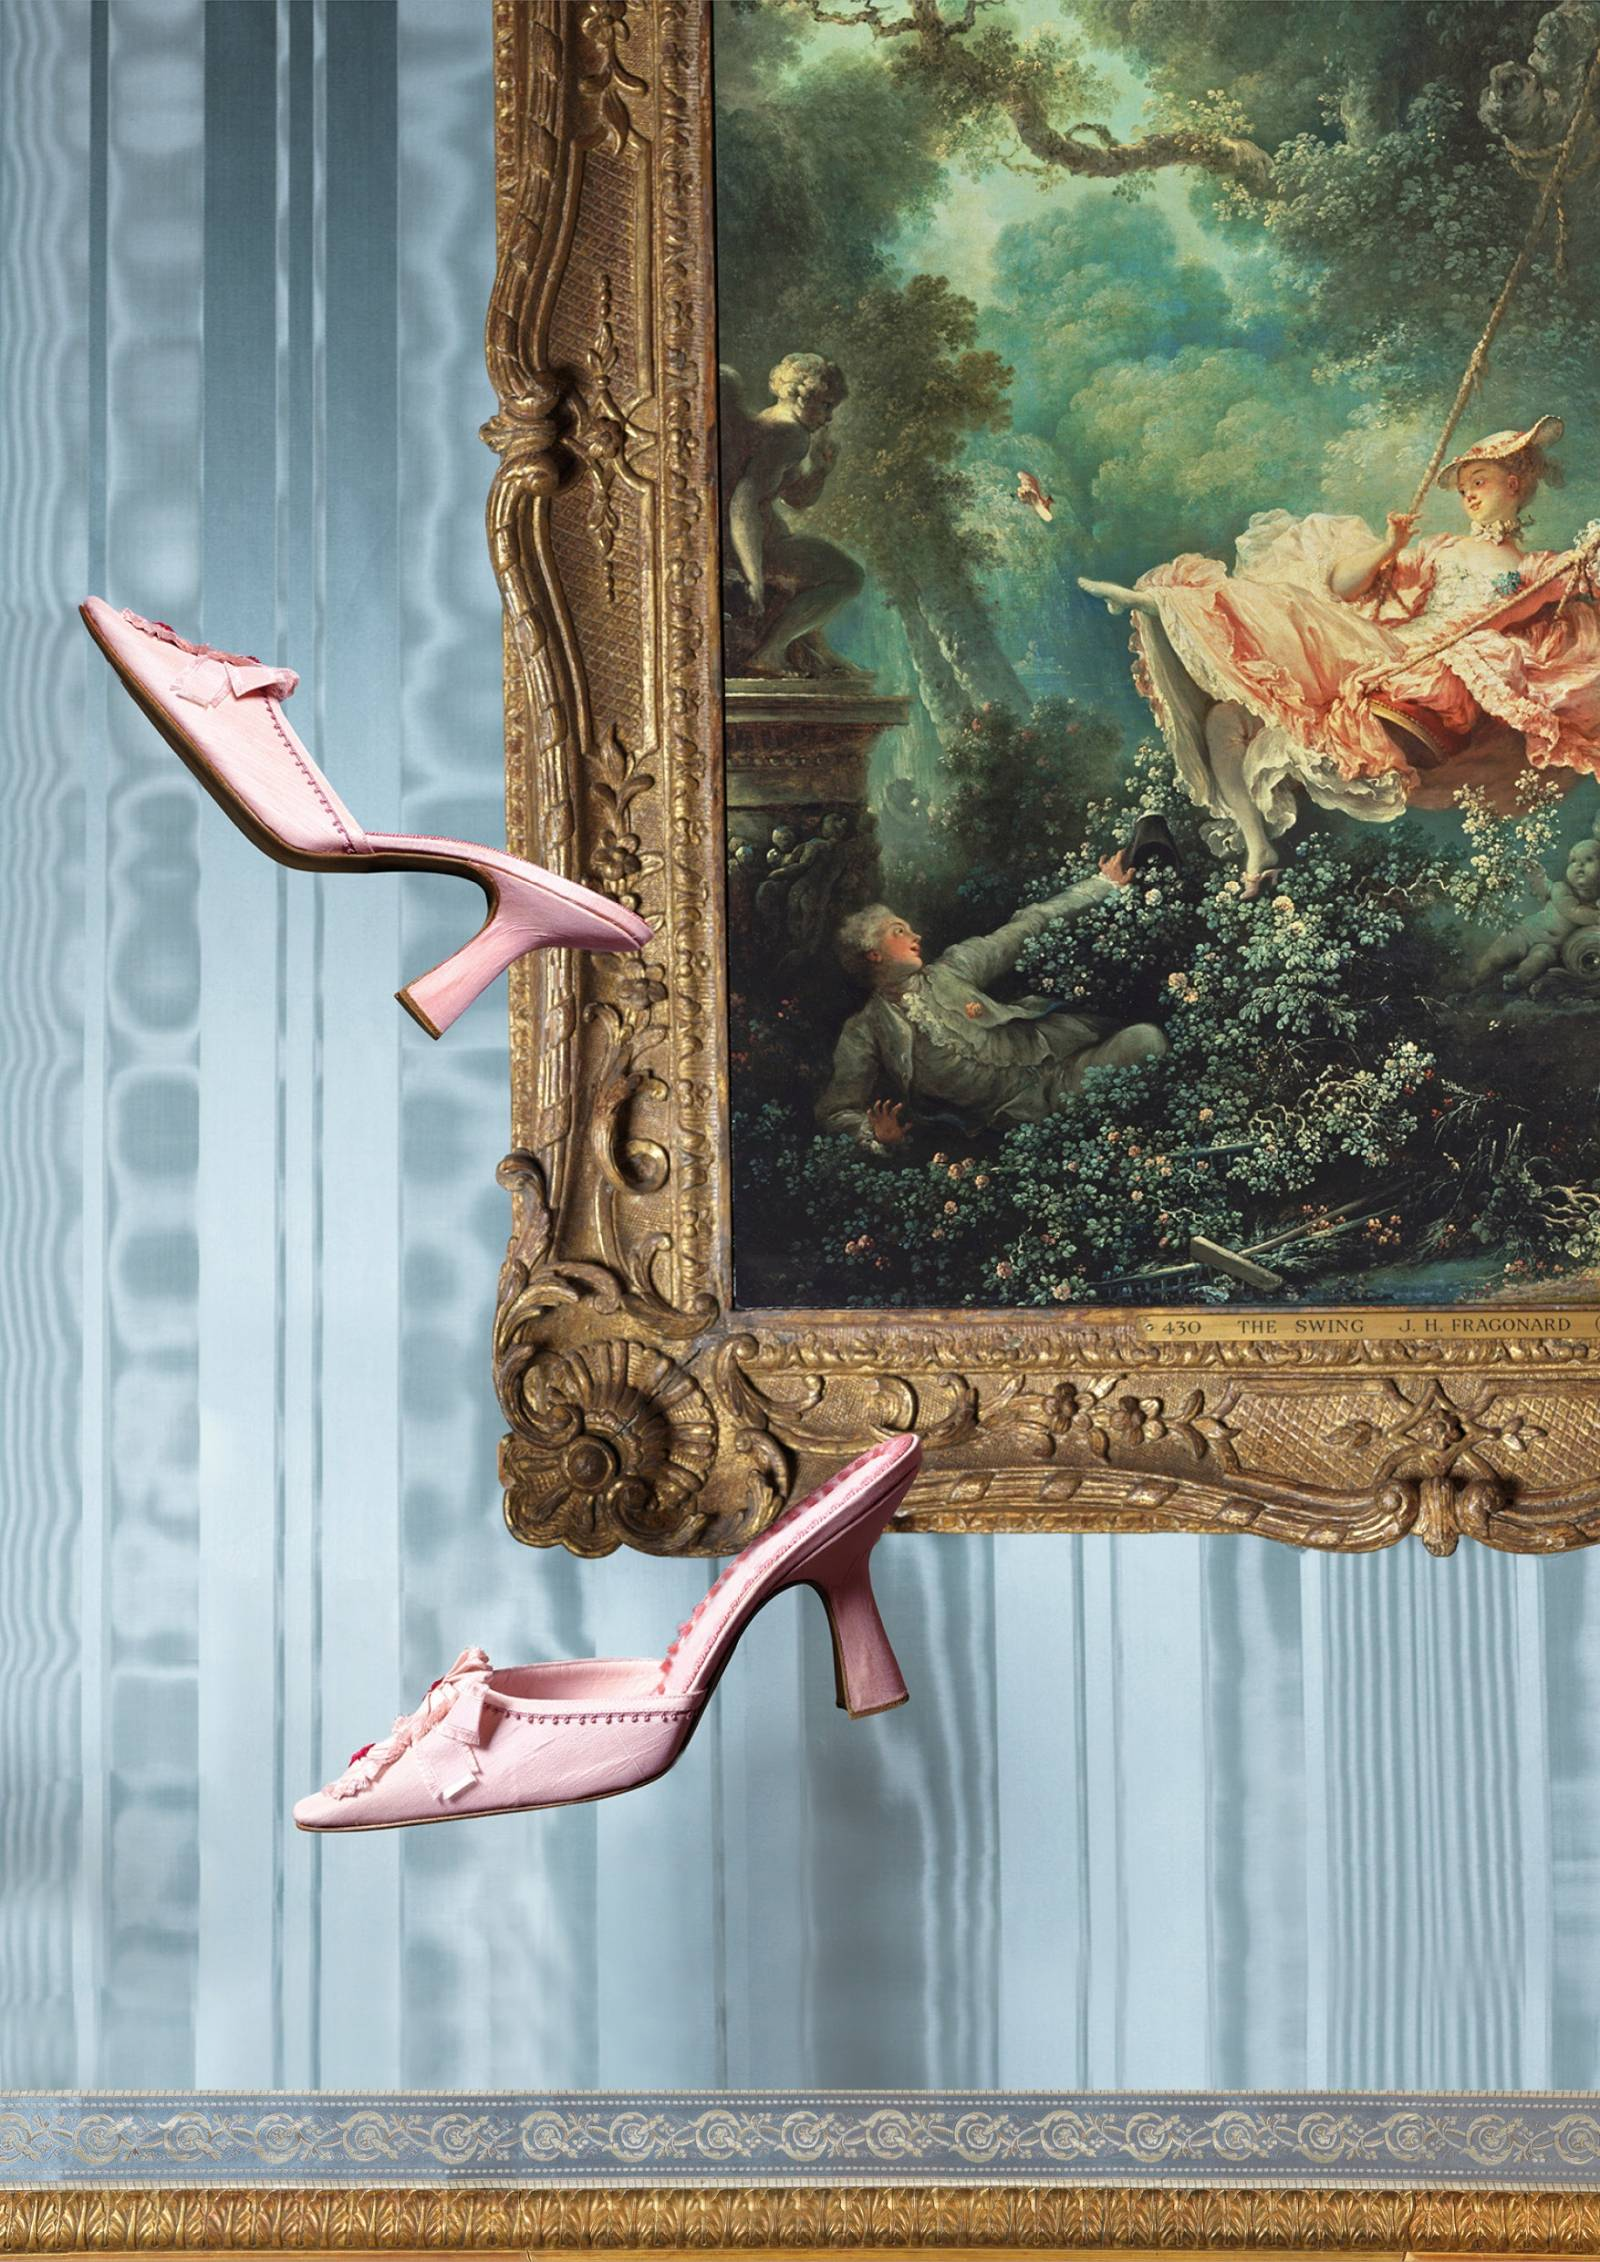 An Enquiring Mind - Manolo Blahnik, Wallace Collection